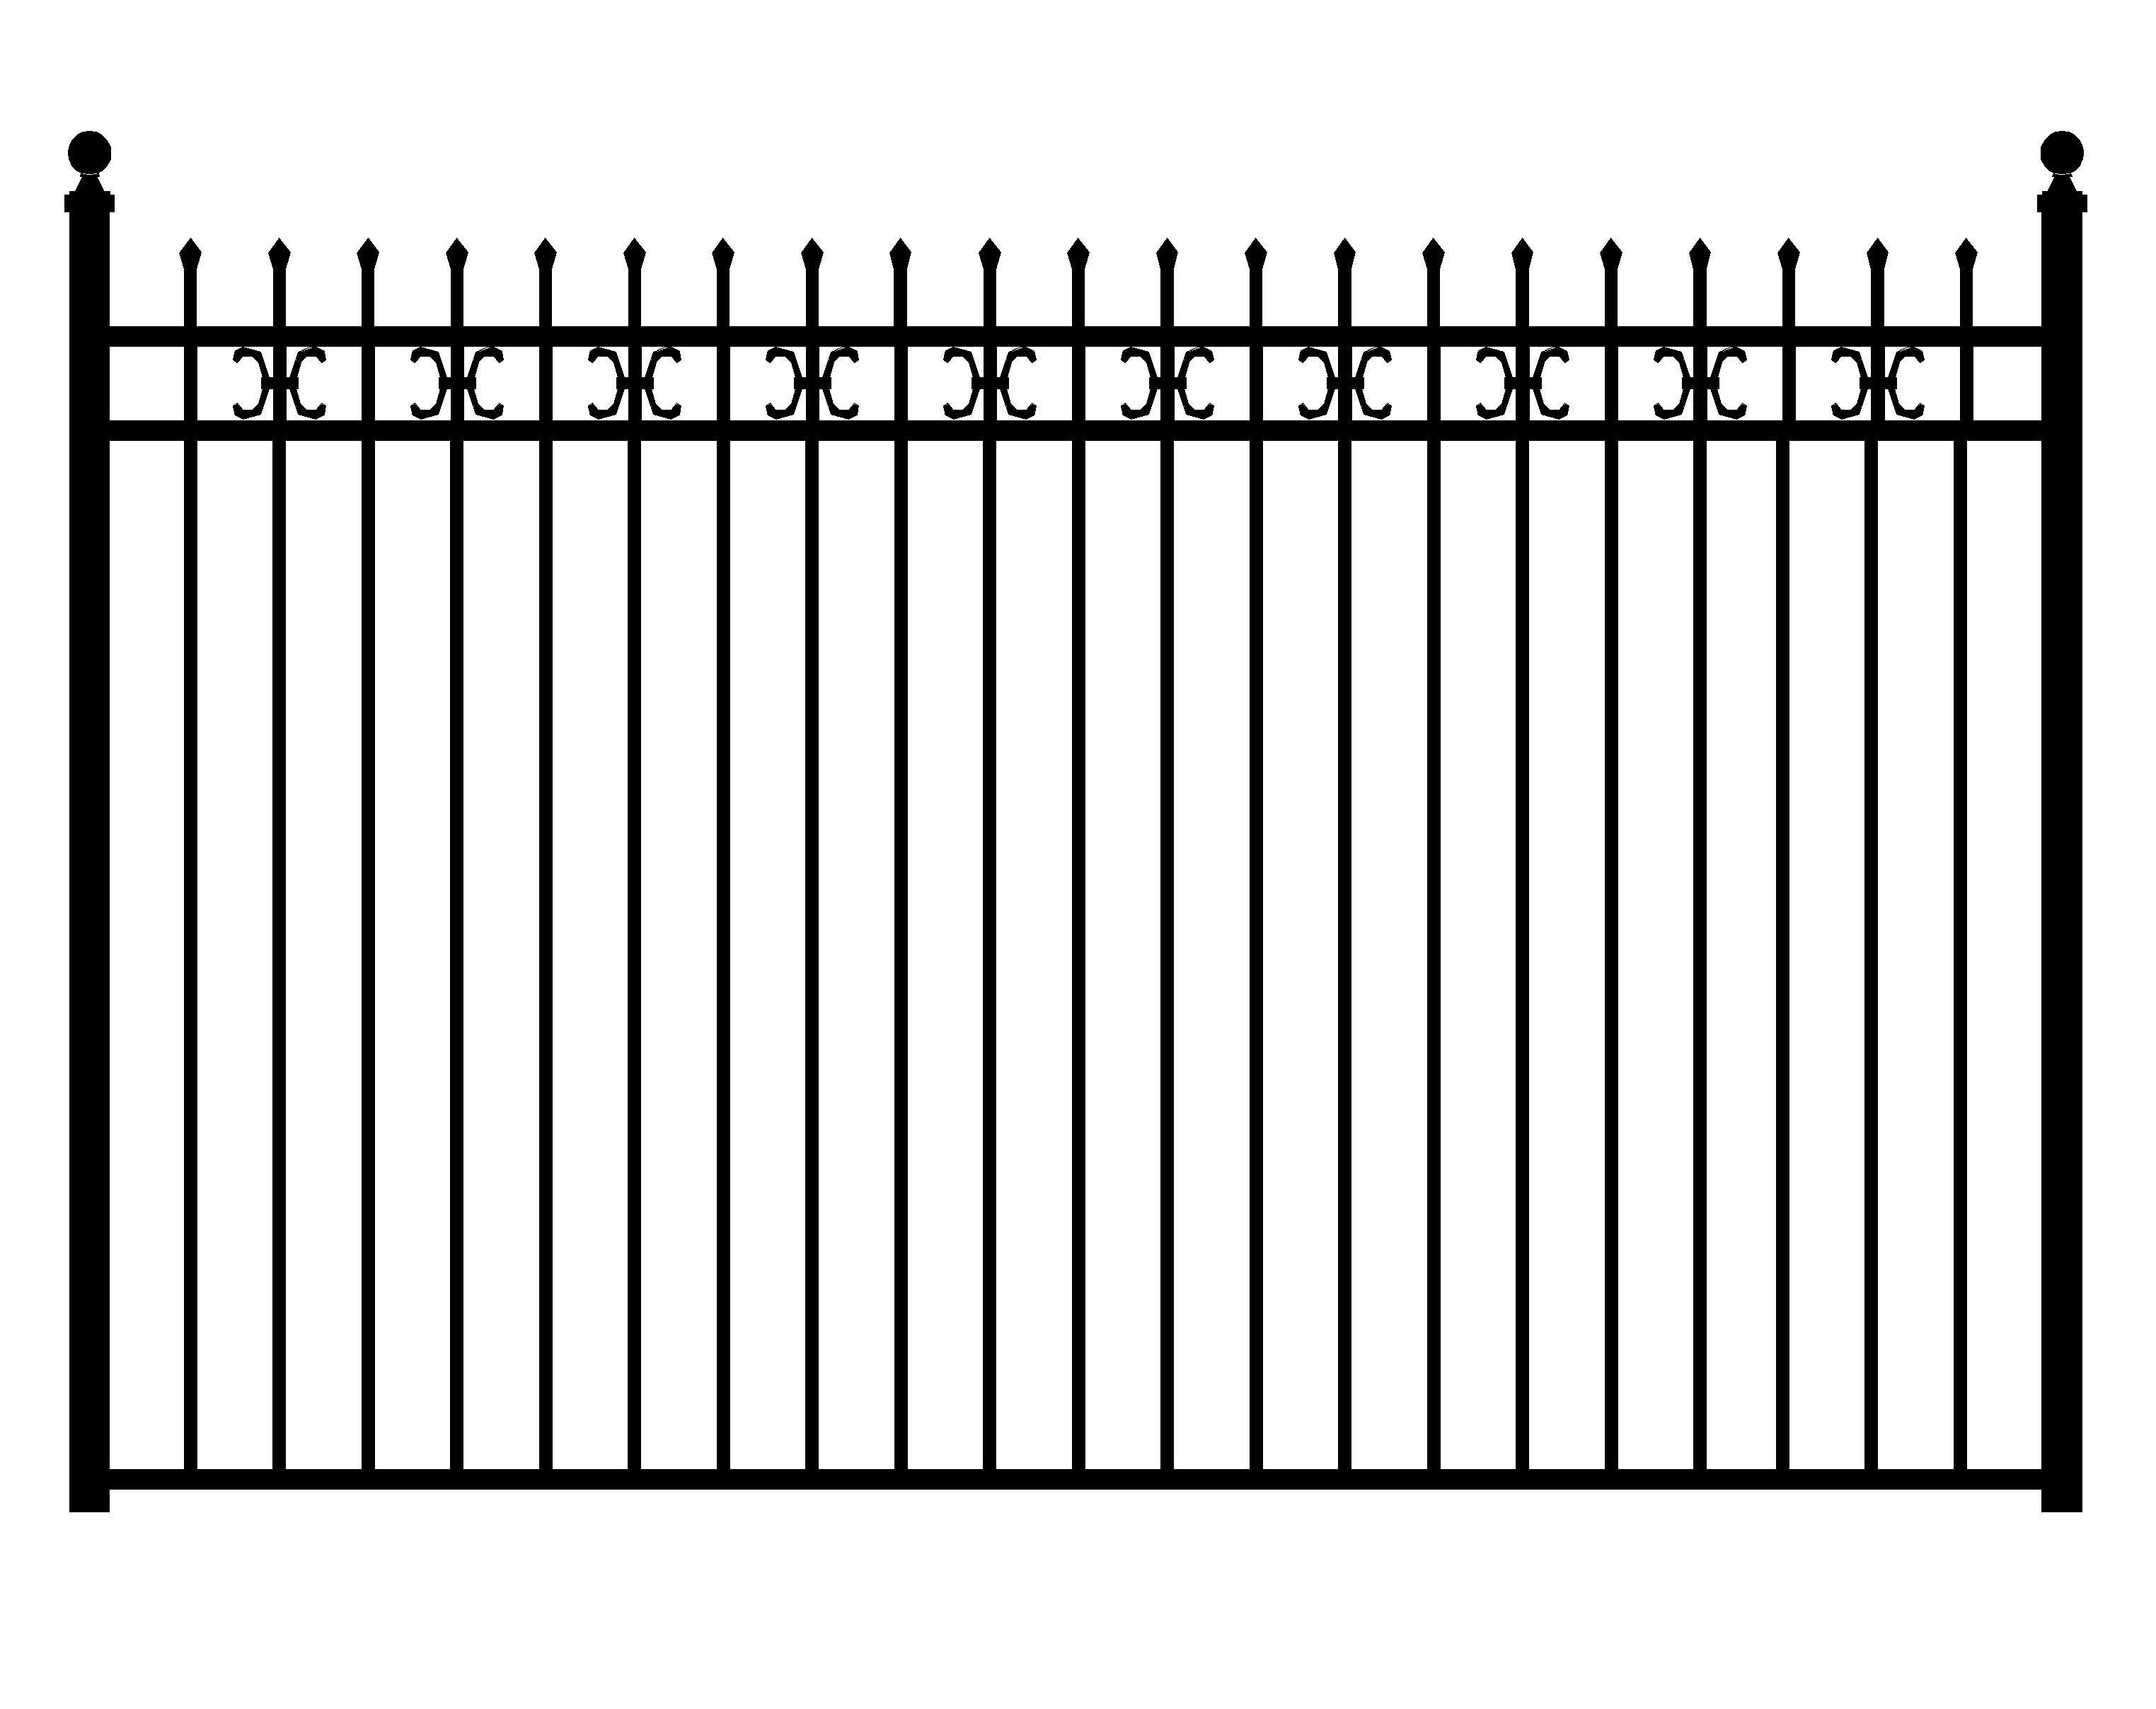 Iron Fence Png And Metal Fence Png Fence Png Iron Jpg 3047 2415 Iron Fence Metal Fence Fence